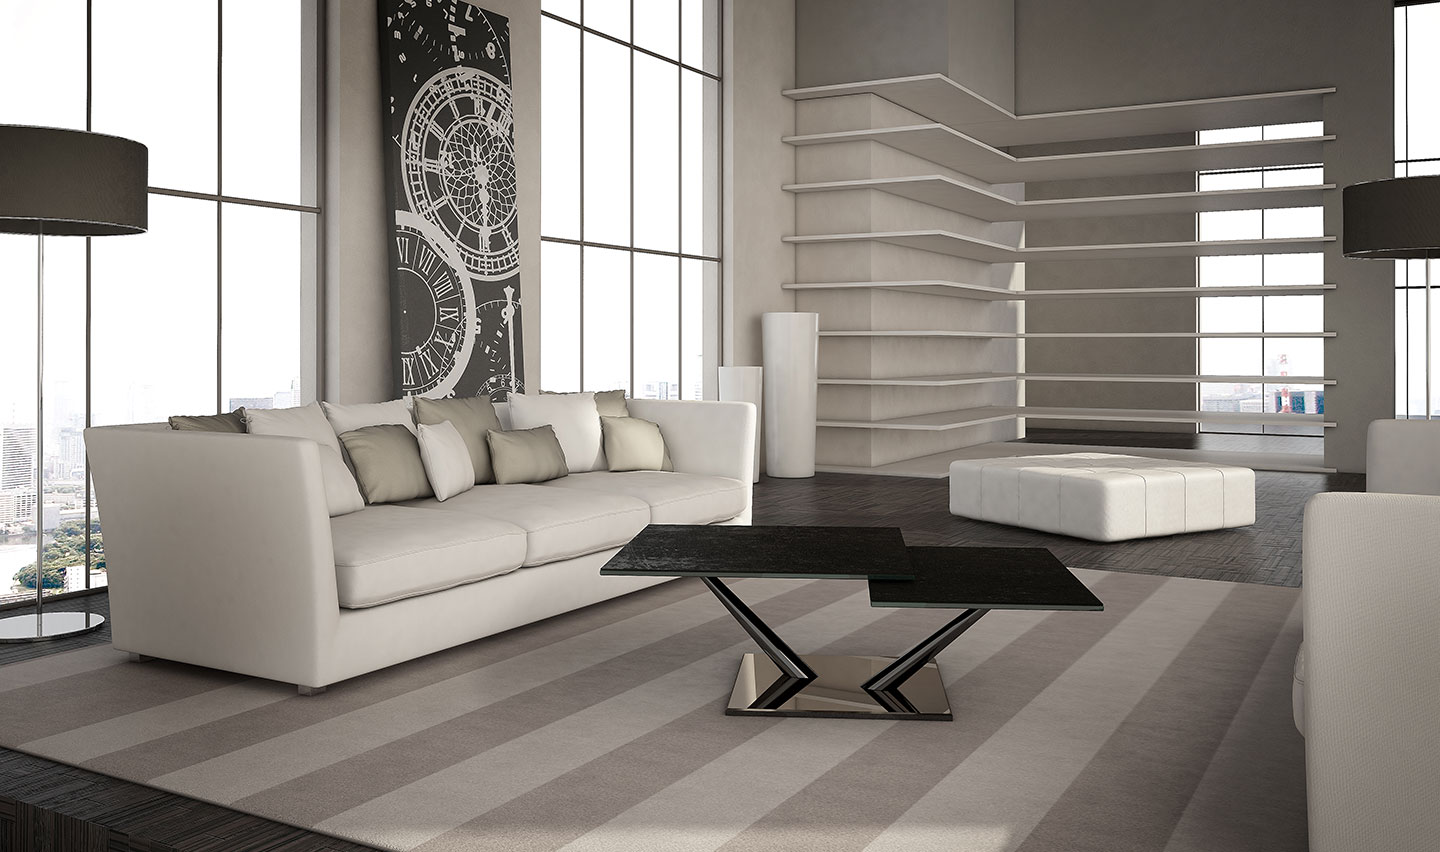 table basse cassius c ramique pardin lagreslepardin lagresle. Black Bedroom Furniture Sets. Home Design Ideas